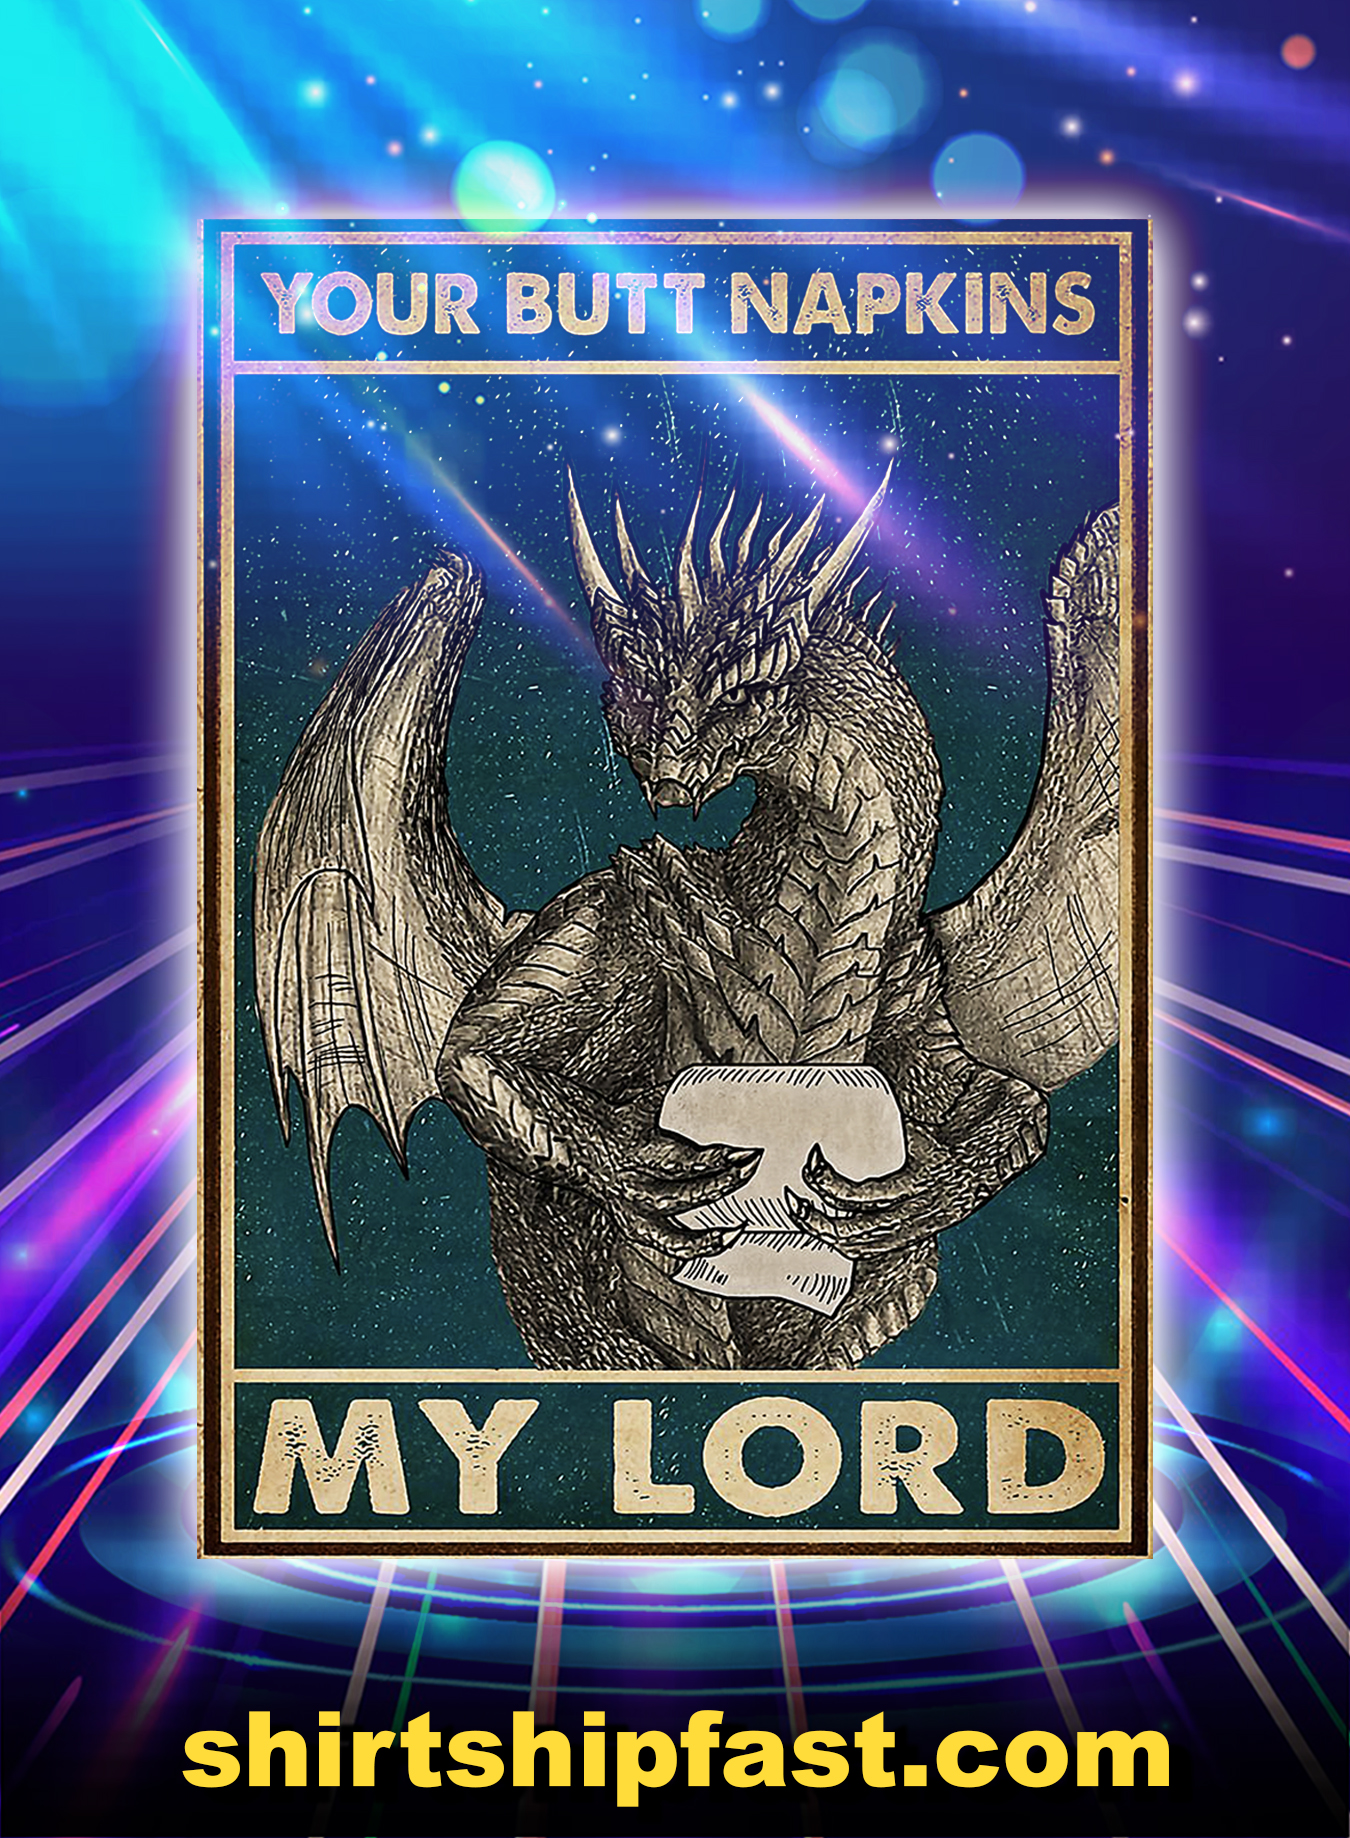 Dragon toilet paper your butt napkins my lord poster - A3